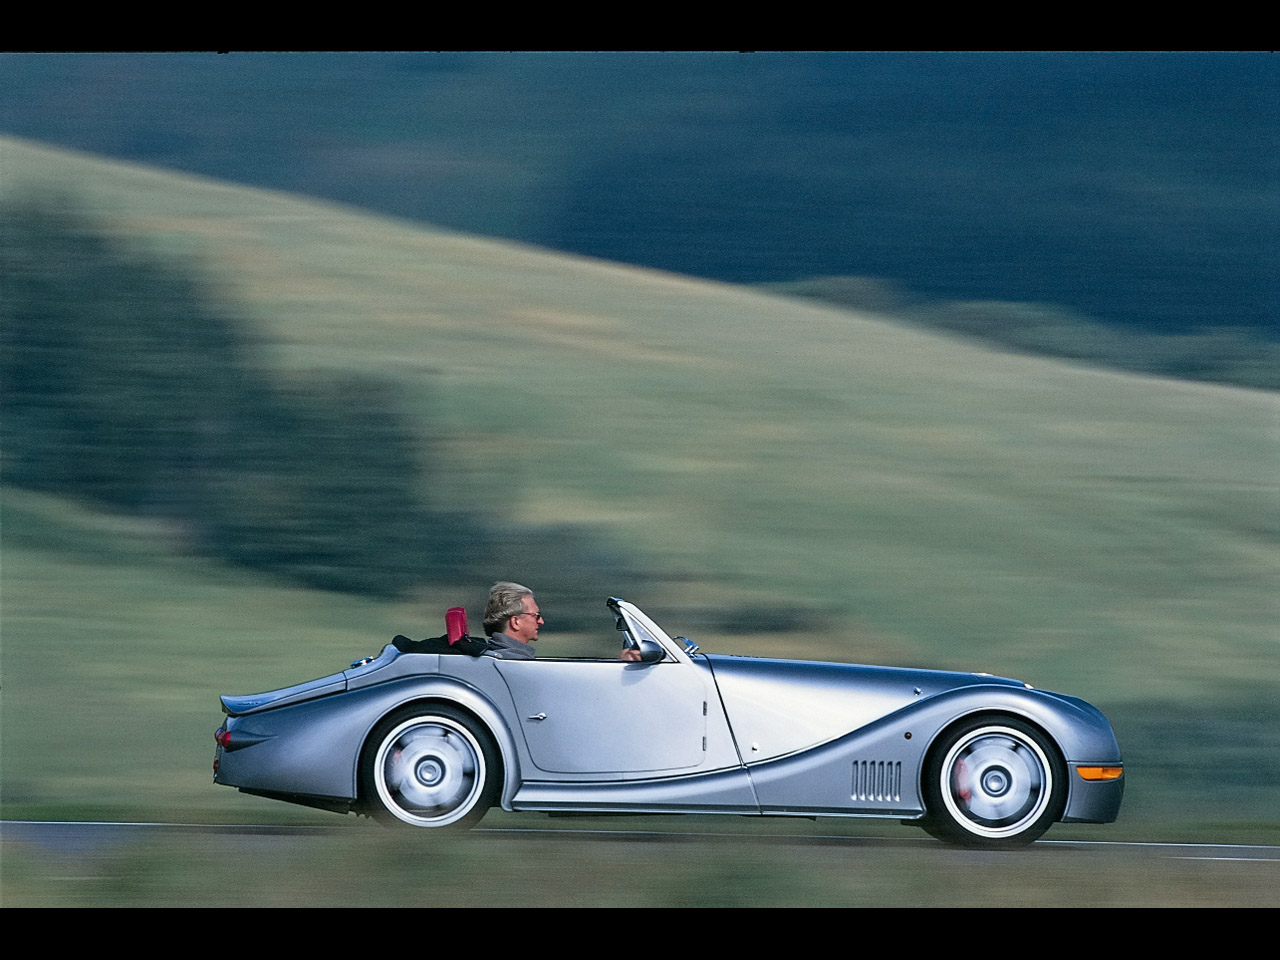 Morgan Aero 8 photo 5900